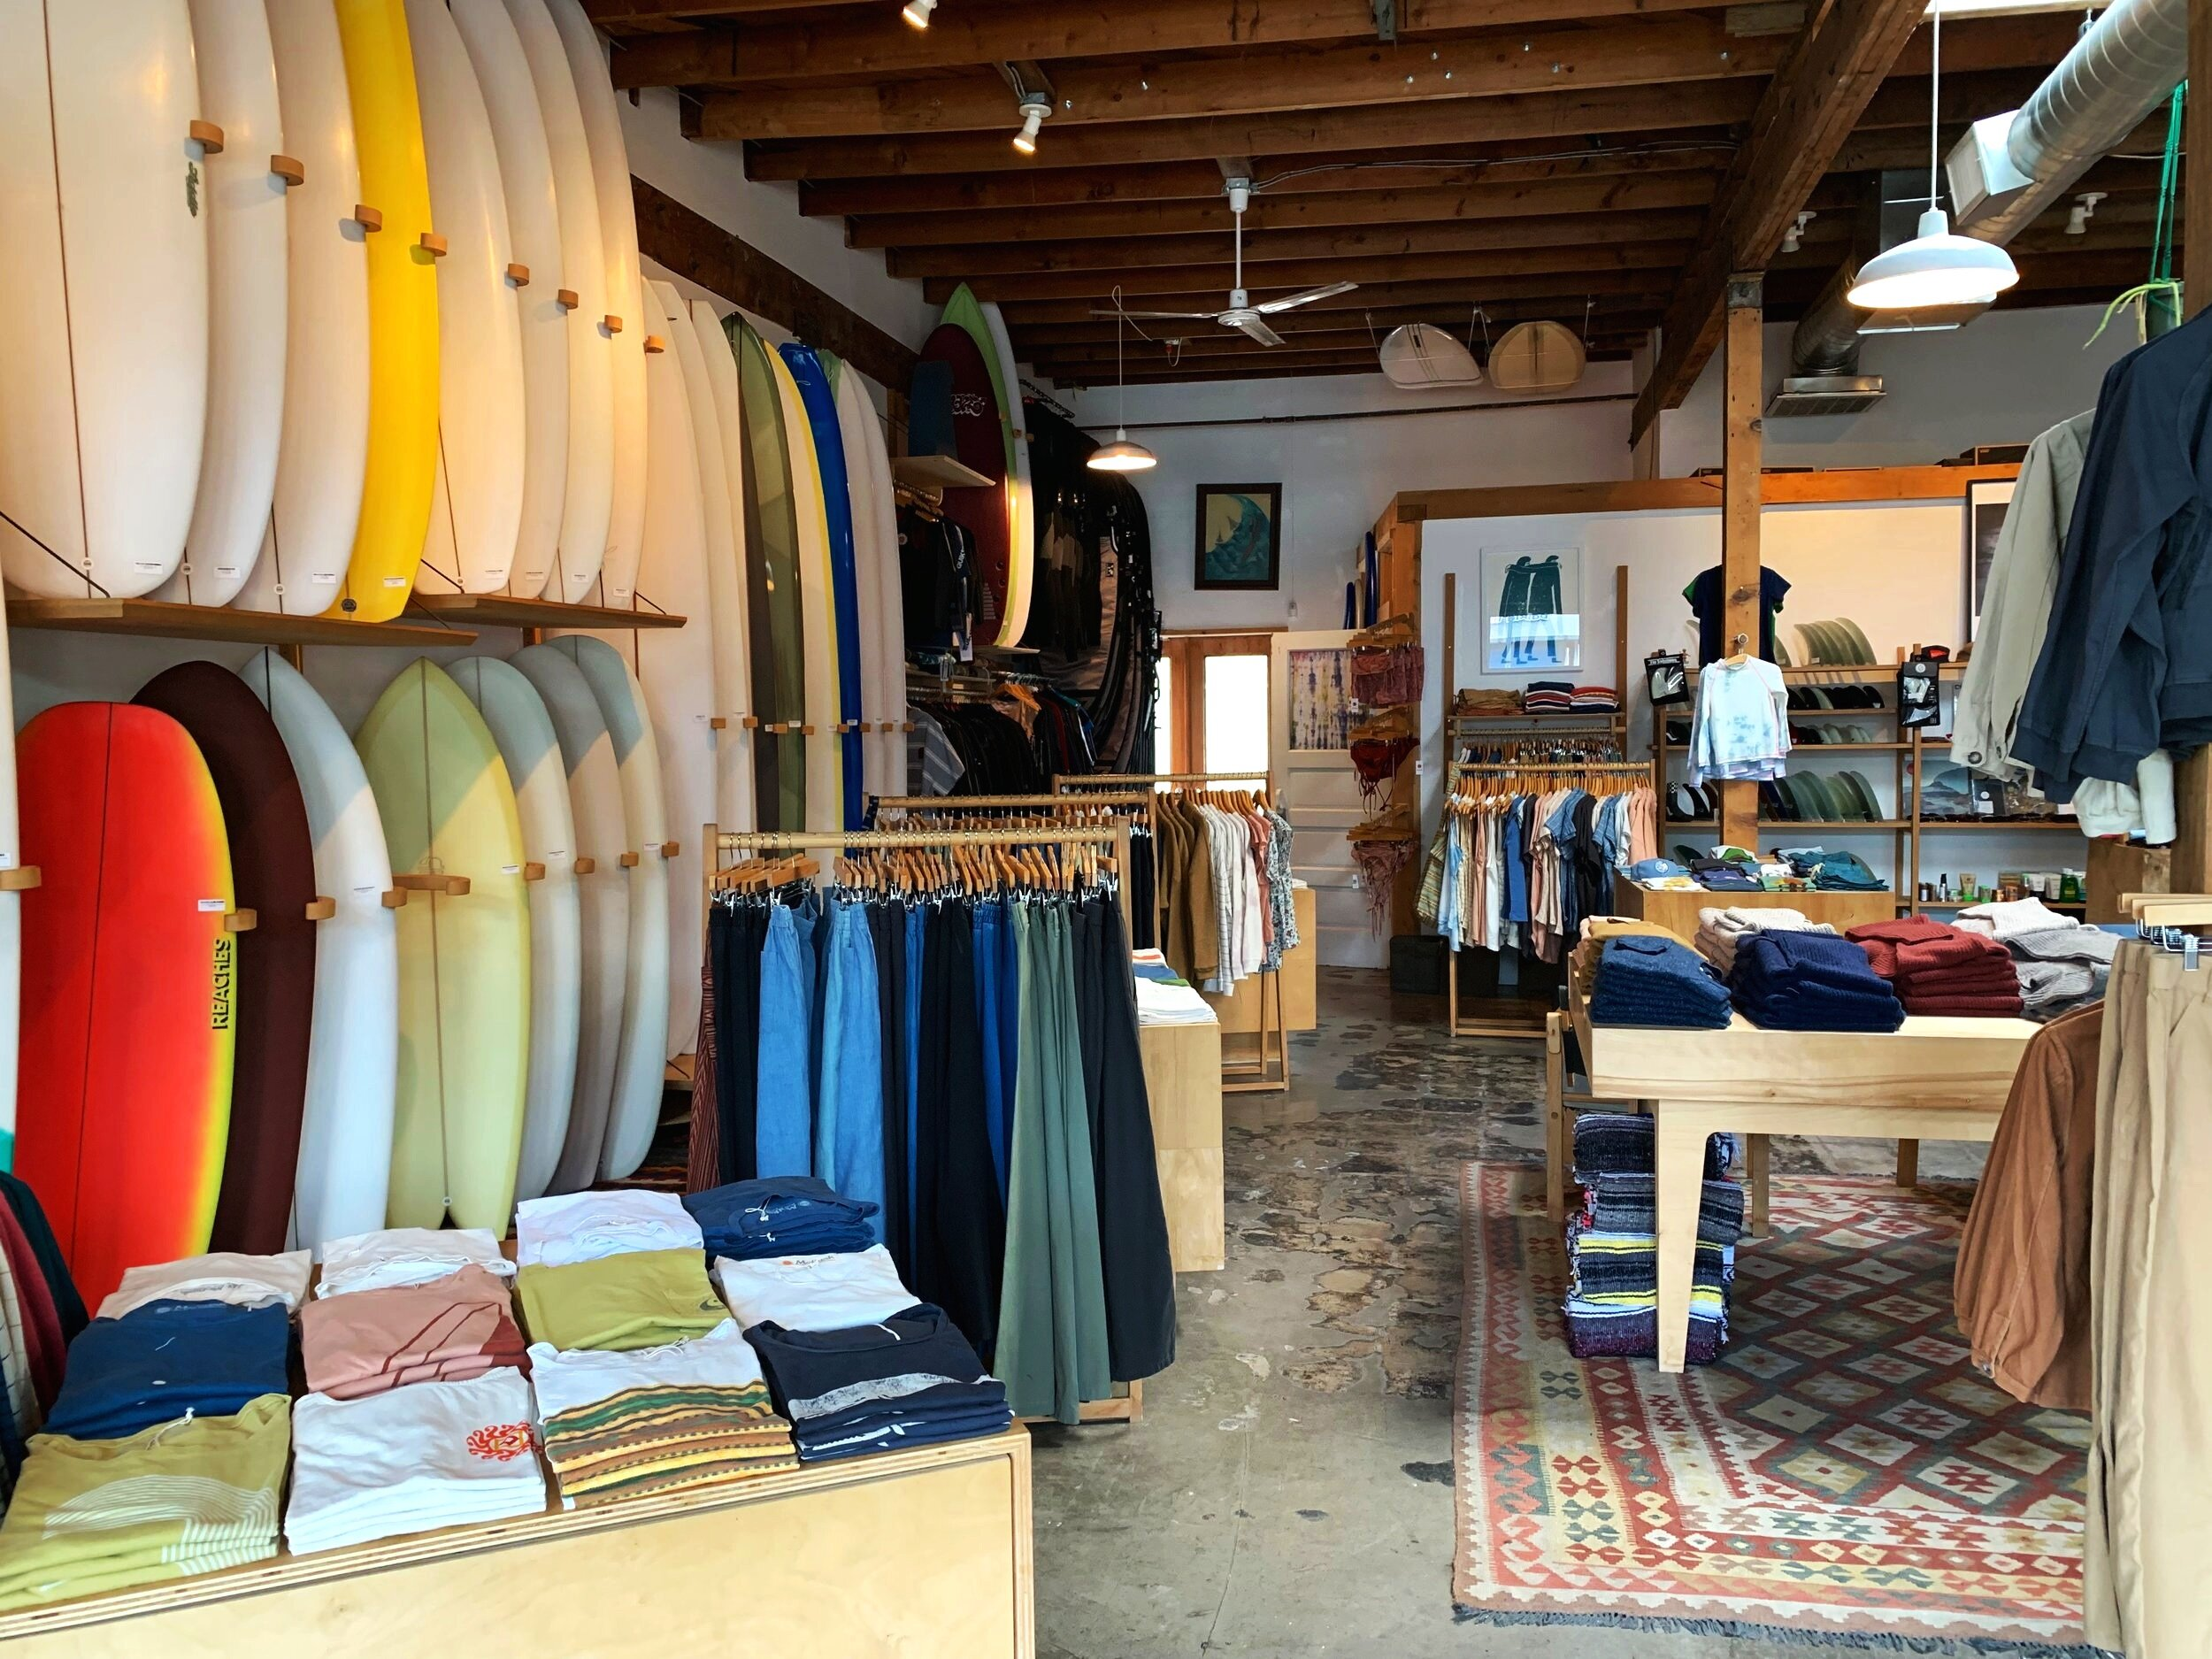 Food is definitely a draw in Silver Lake, but so, too, are the numerous inviting storefronts, such as that of  Mollusk Surf Shop , which sits just across from Millie's on Sunset. Inside you'll find sleek graphic tees, surfboards you'll wish were yours, and plenty of other wave-riding paraphernalia.